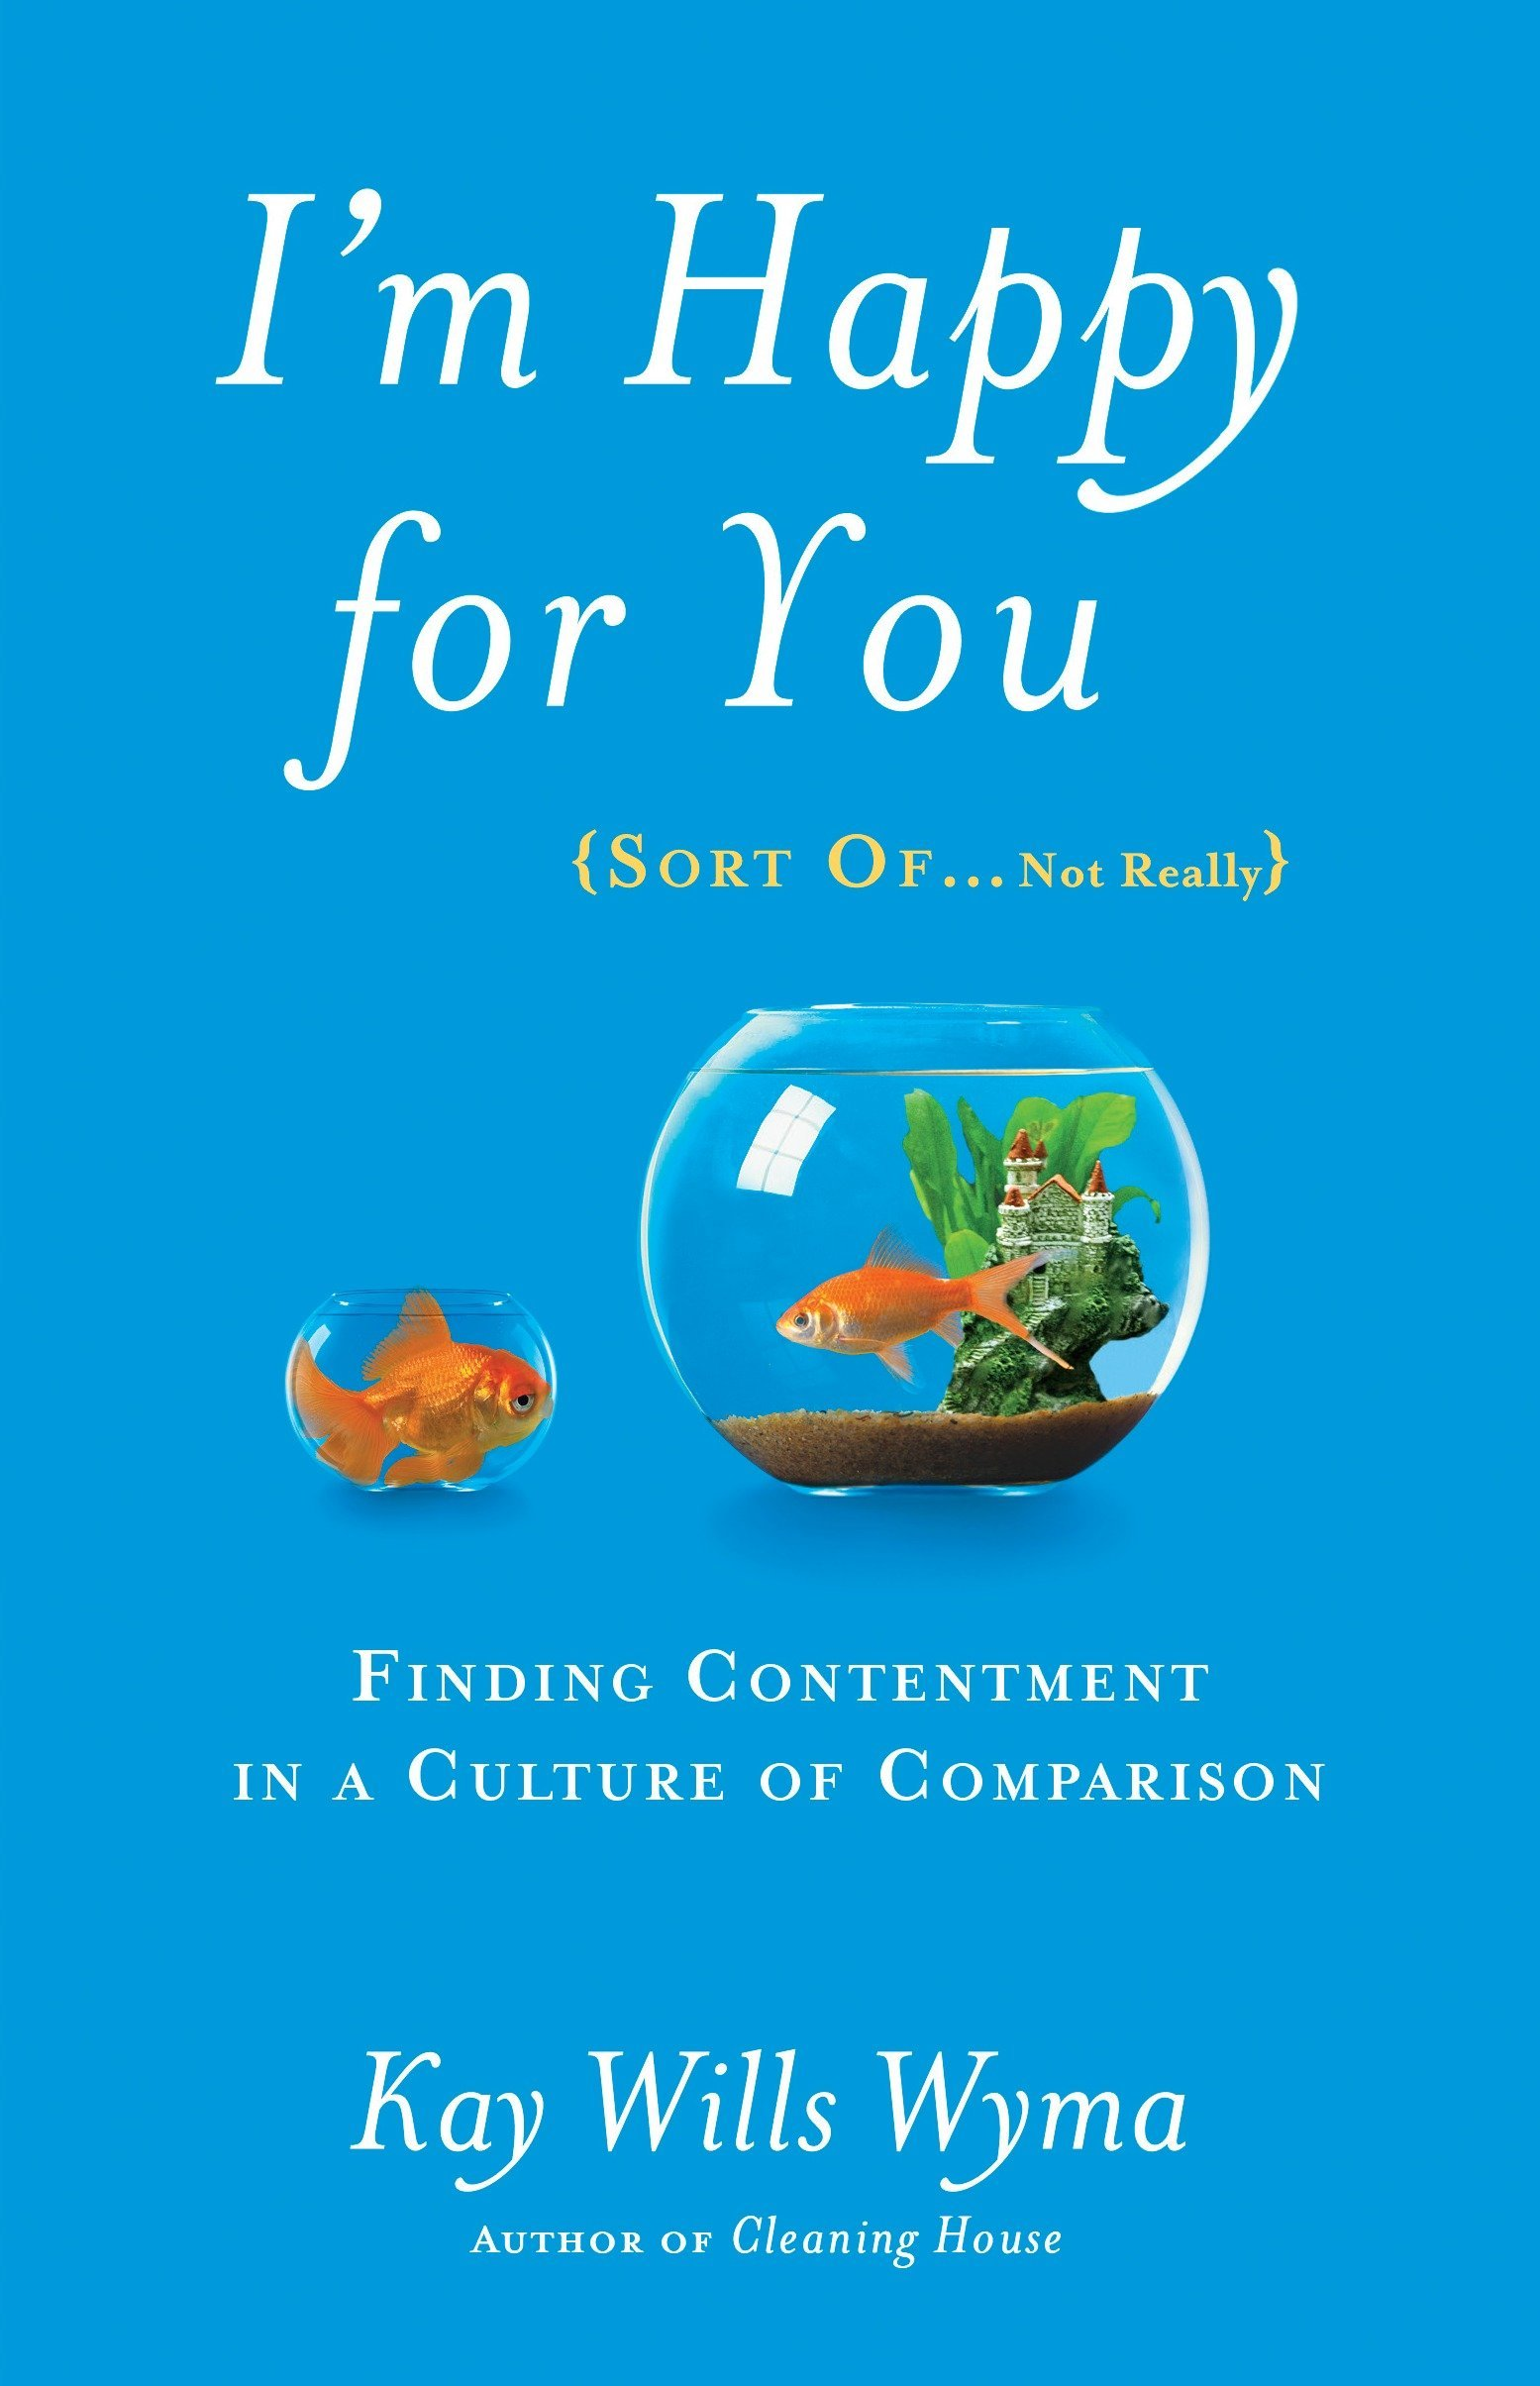 I'm Happy for You (Sort Of...Not Really): Finding Contentment in a Culture  of Comparison: Wyma, Kay Wills: 9781601425959: Amazon.com: Books